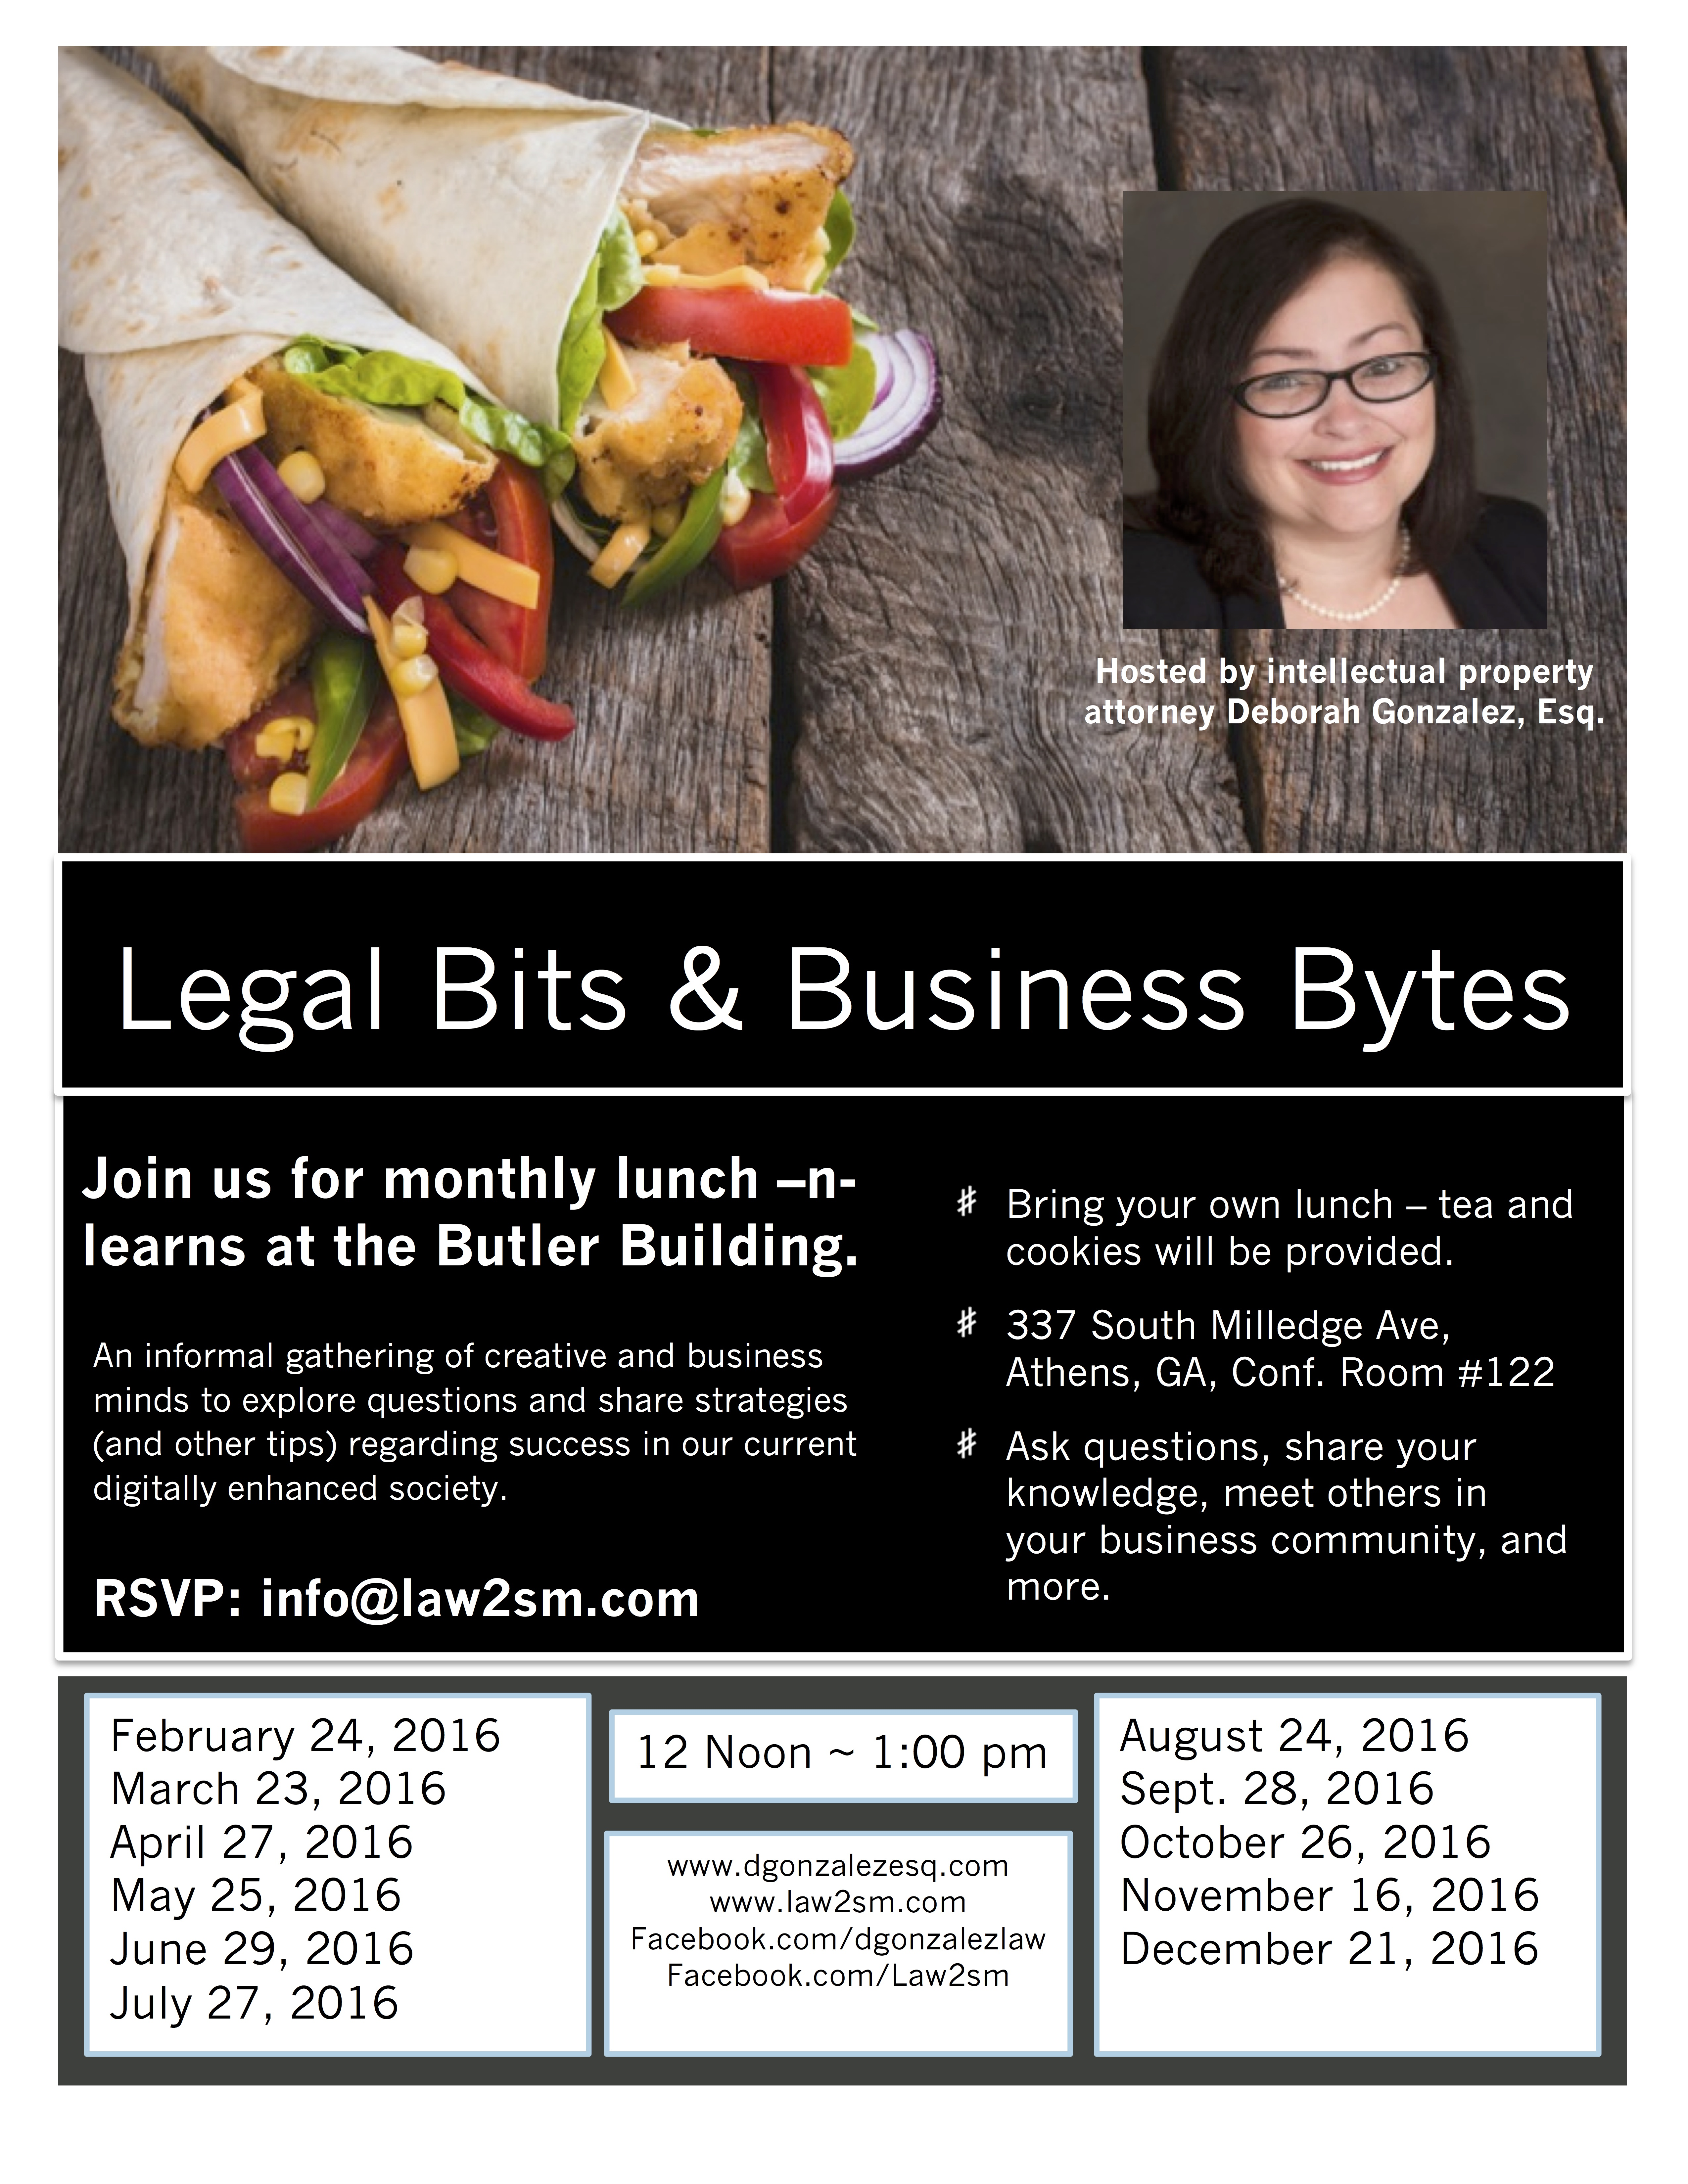 Legal Bits & Business Bytes Monthly Lunch-n-Learns – D Gonzalez Law